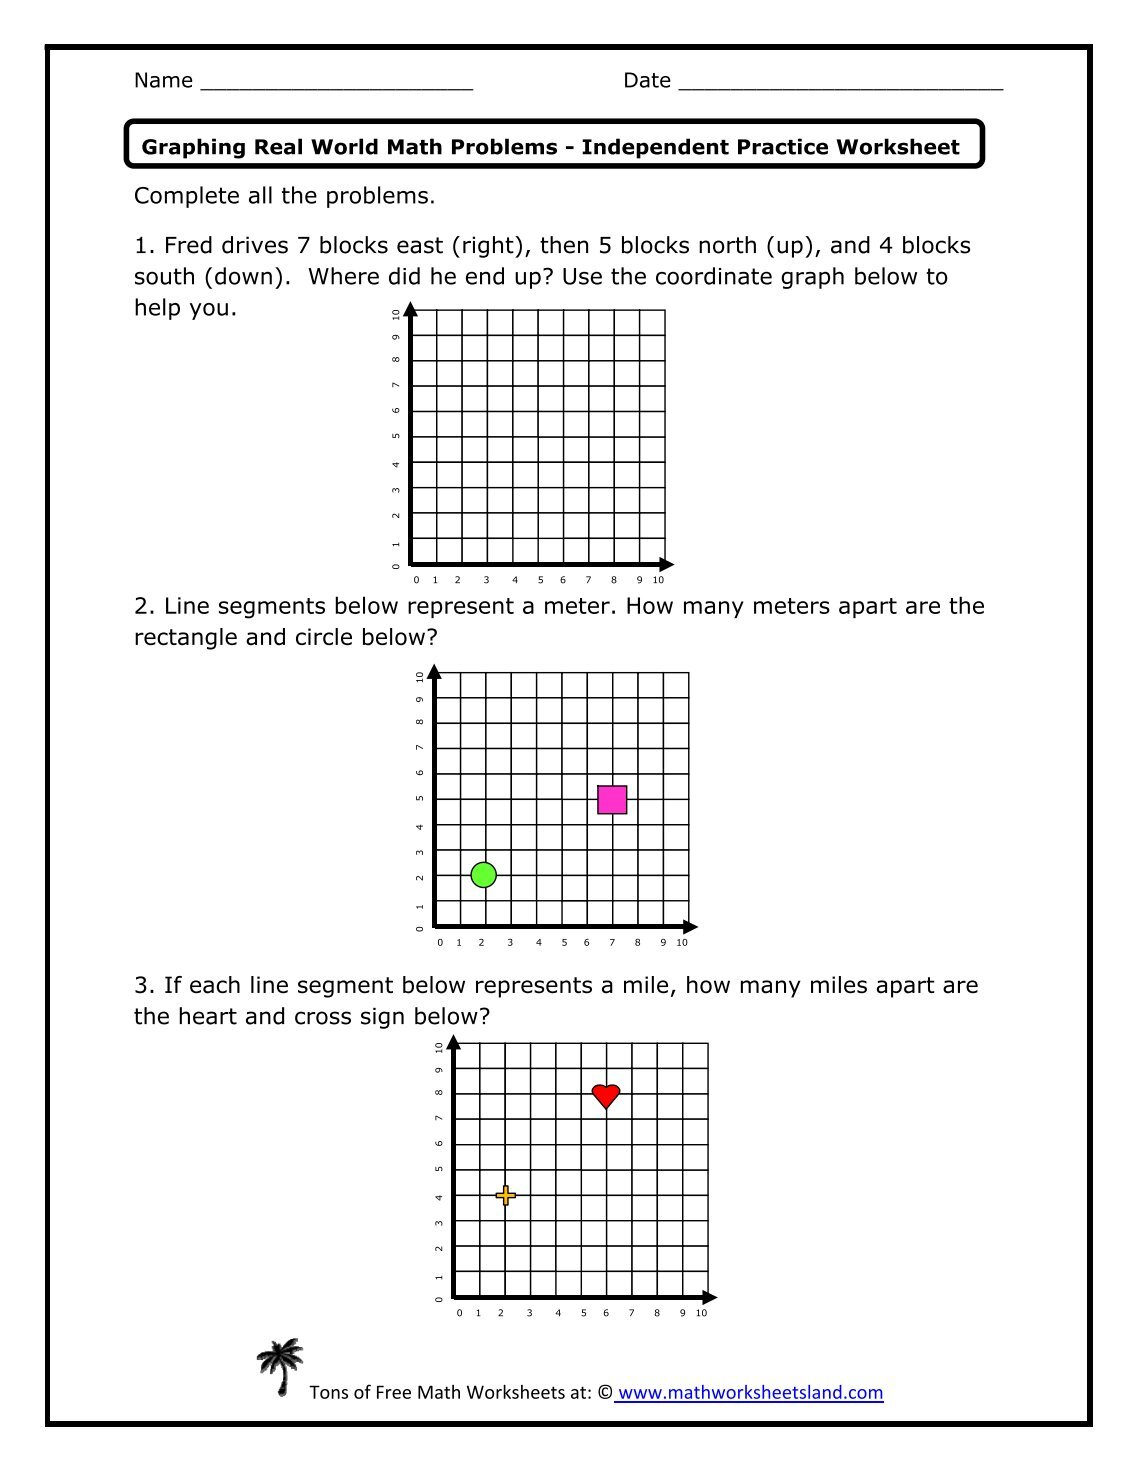 worksheet Math Worksheet Land math worksheets land free library download and print w ksheet m th l nd mytourvn study site